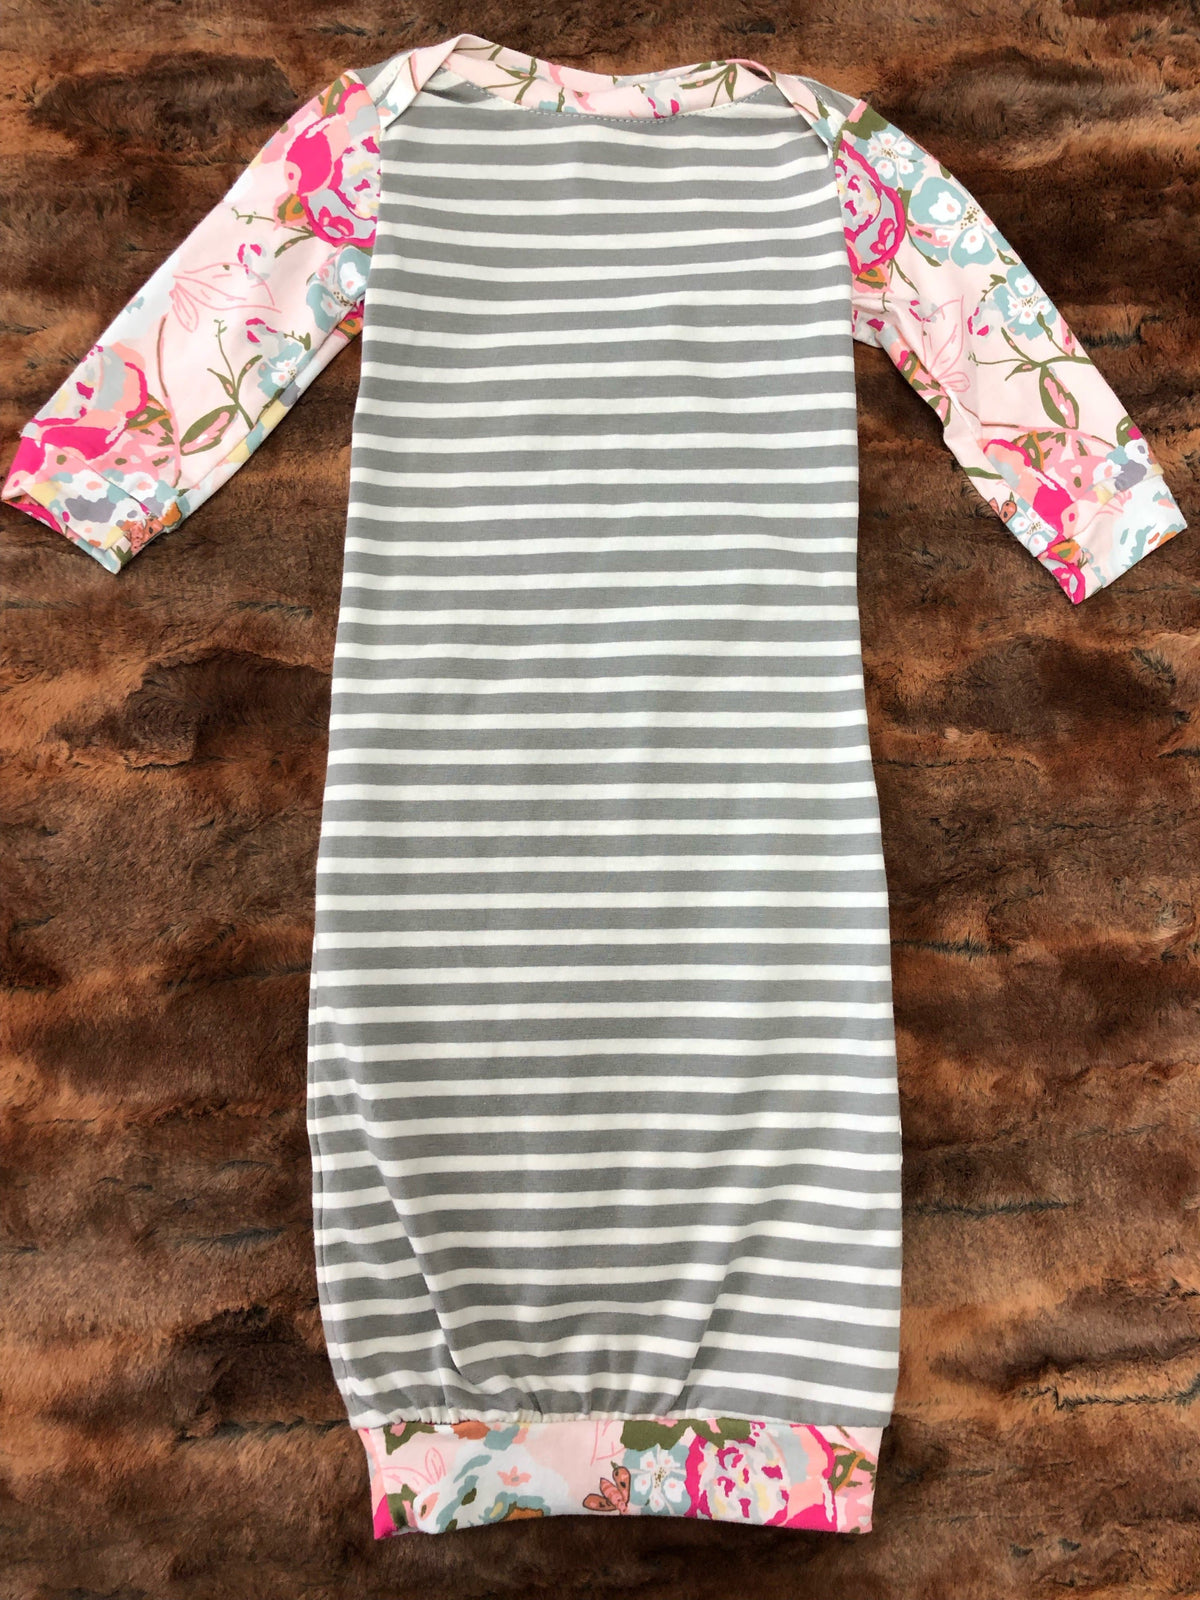 2 Day Ship - Baby Gown - Gray Stripe with Blush Floral Going Home Outfit